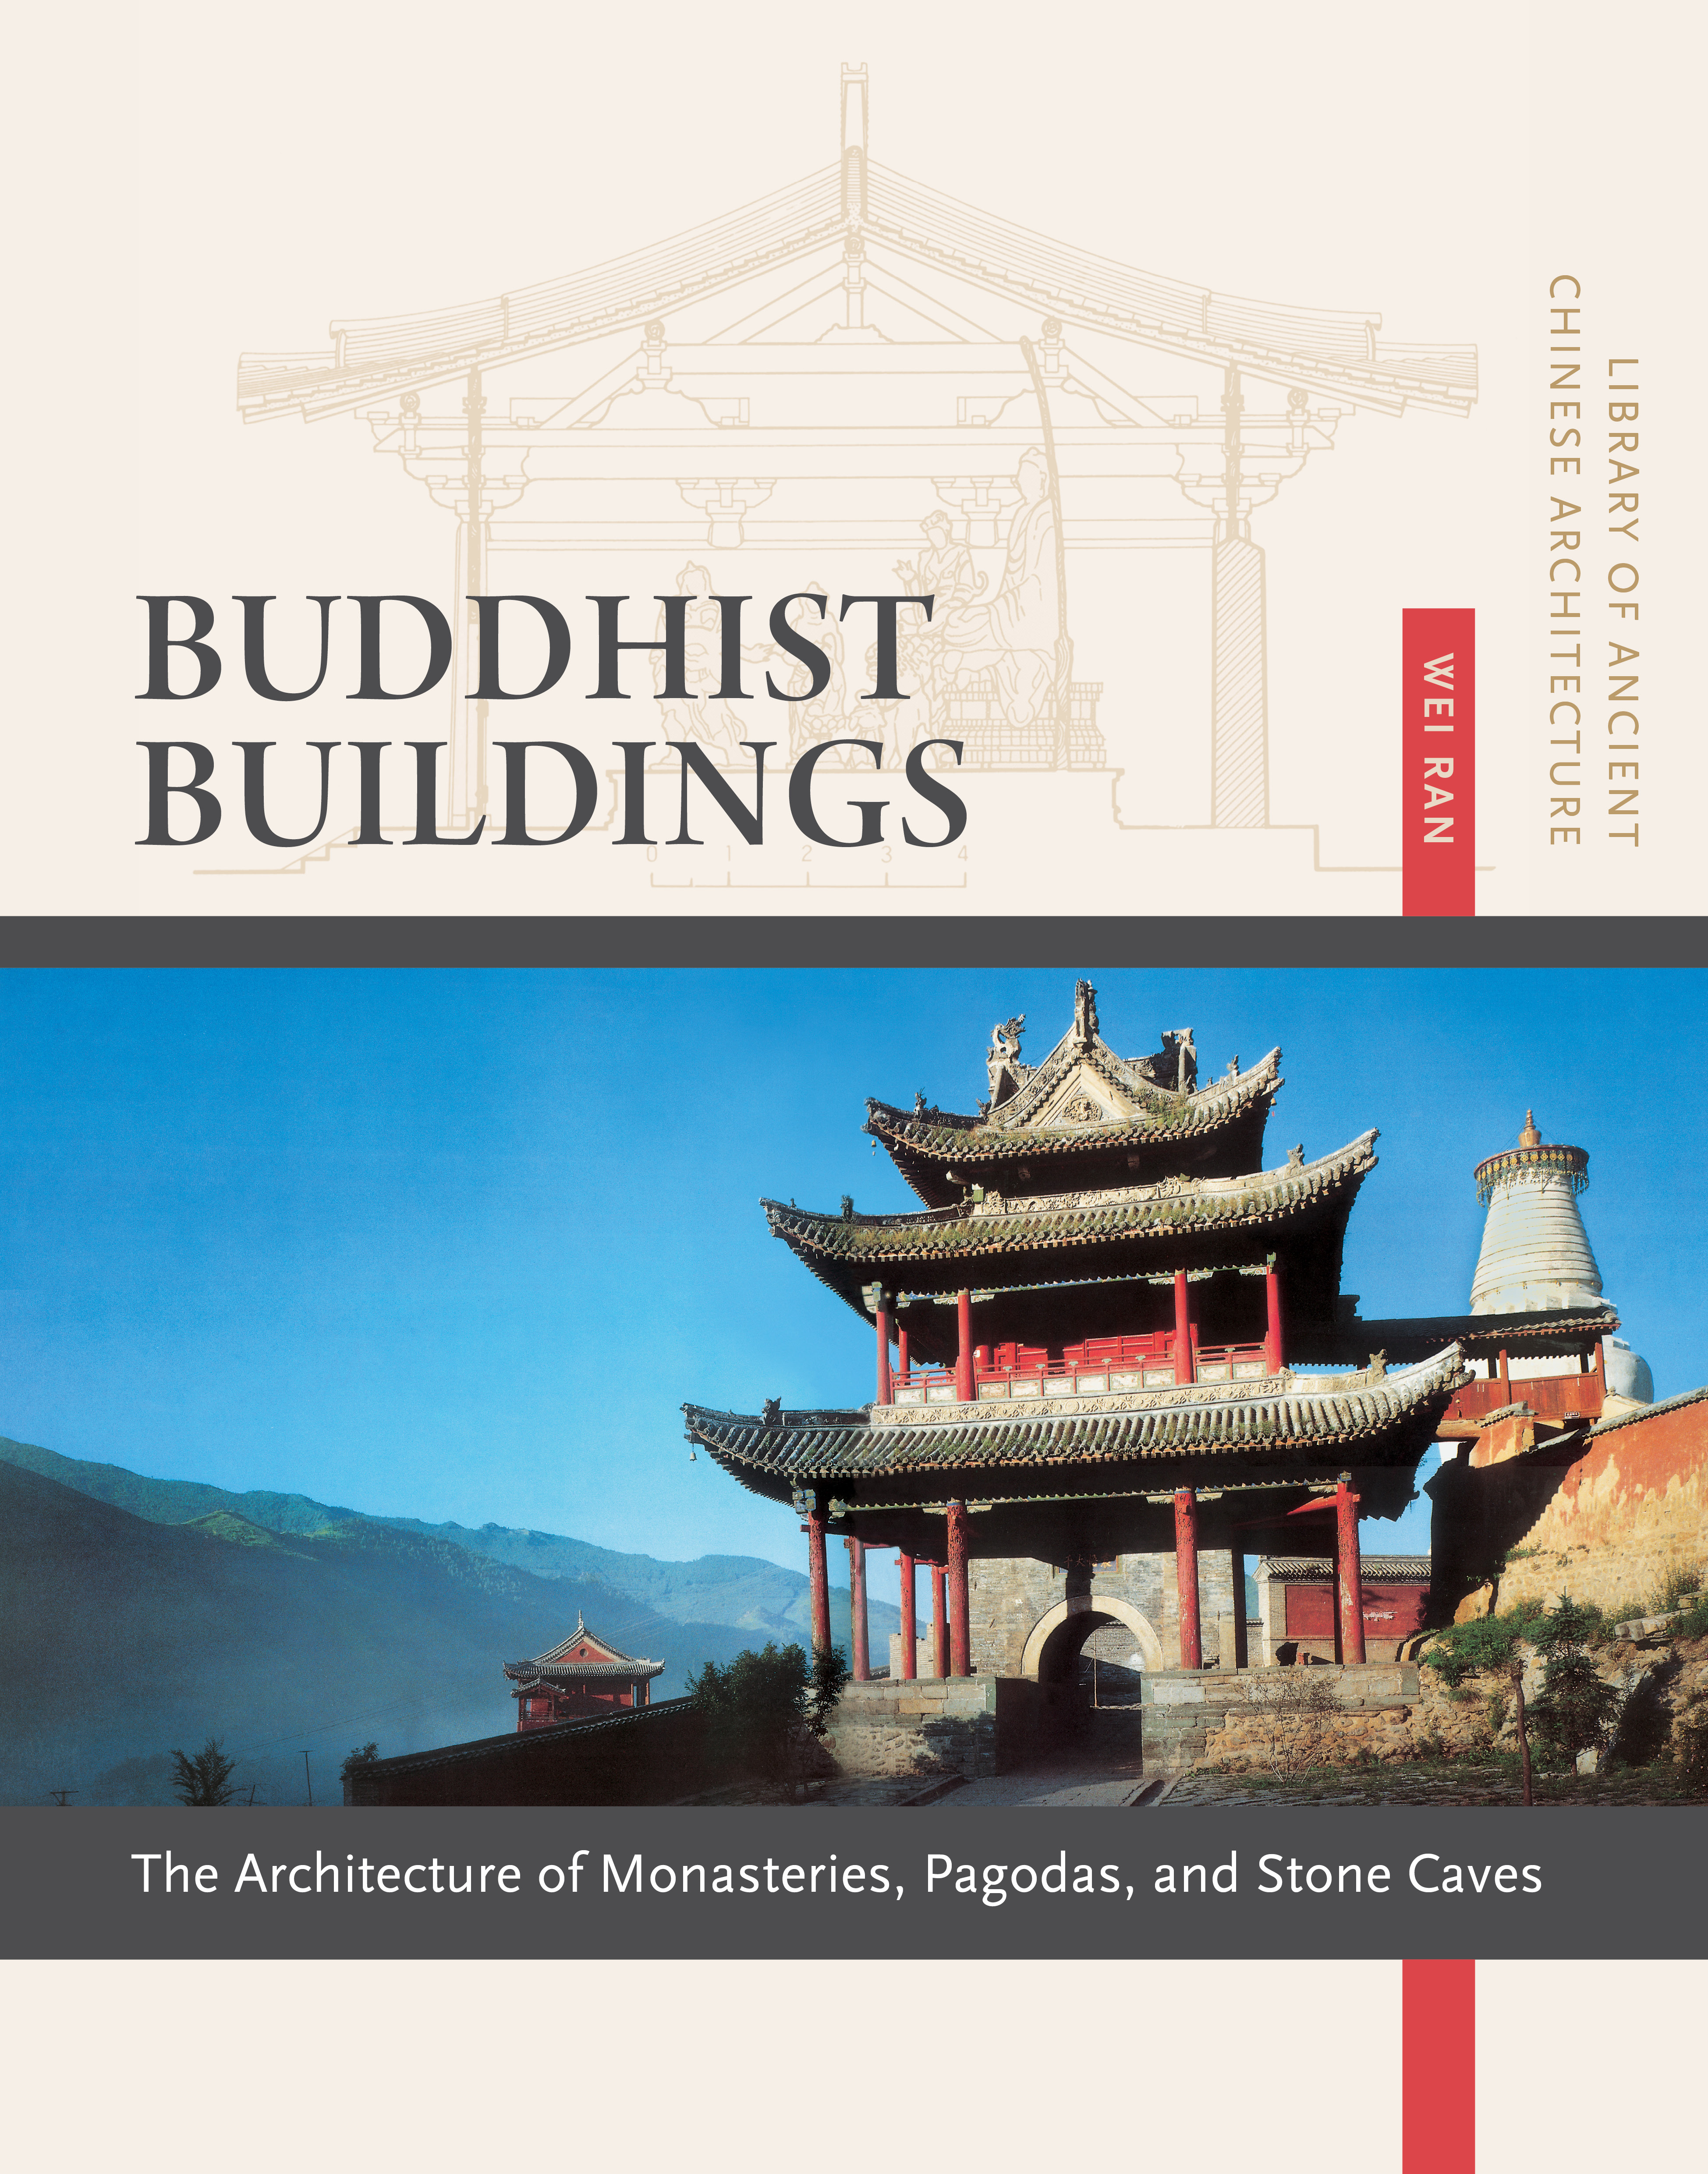 Buddhist Buildings: The Architecture of Monasteries, Pagodas, and Stone Caves